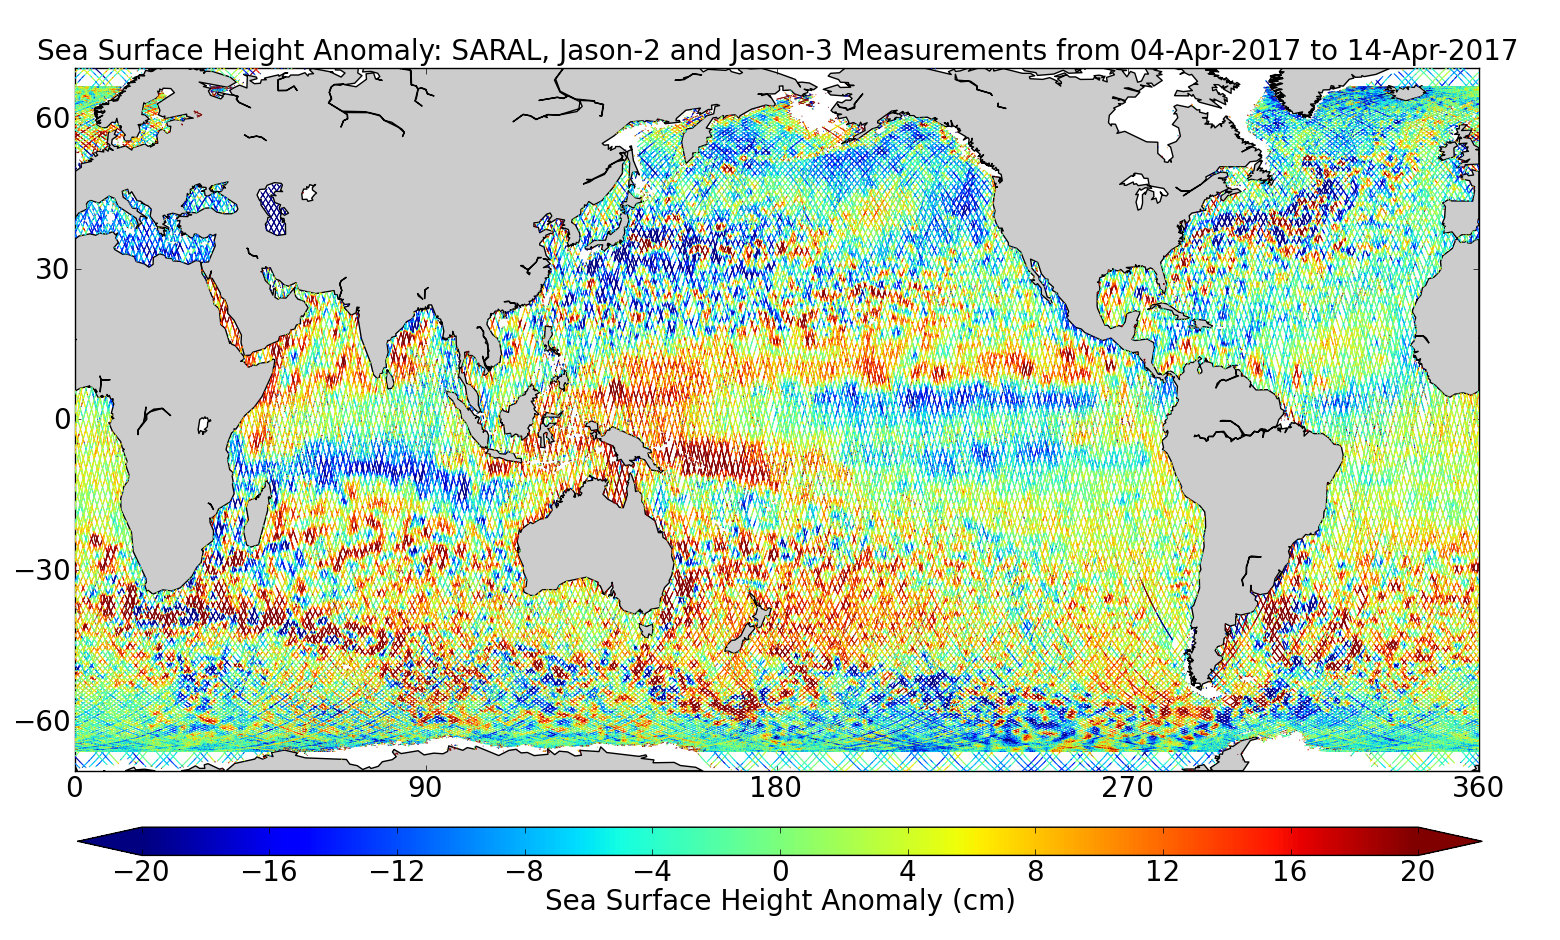 Sea Surface Height Anomaly: SARAL, Jason-2 and Jason-3 Measurements from 04-Apr-2017 to 14-Apr-2017